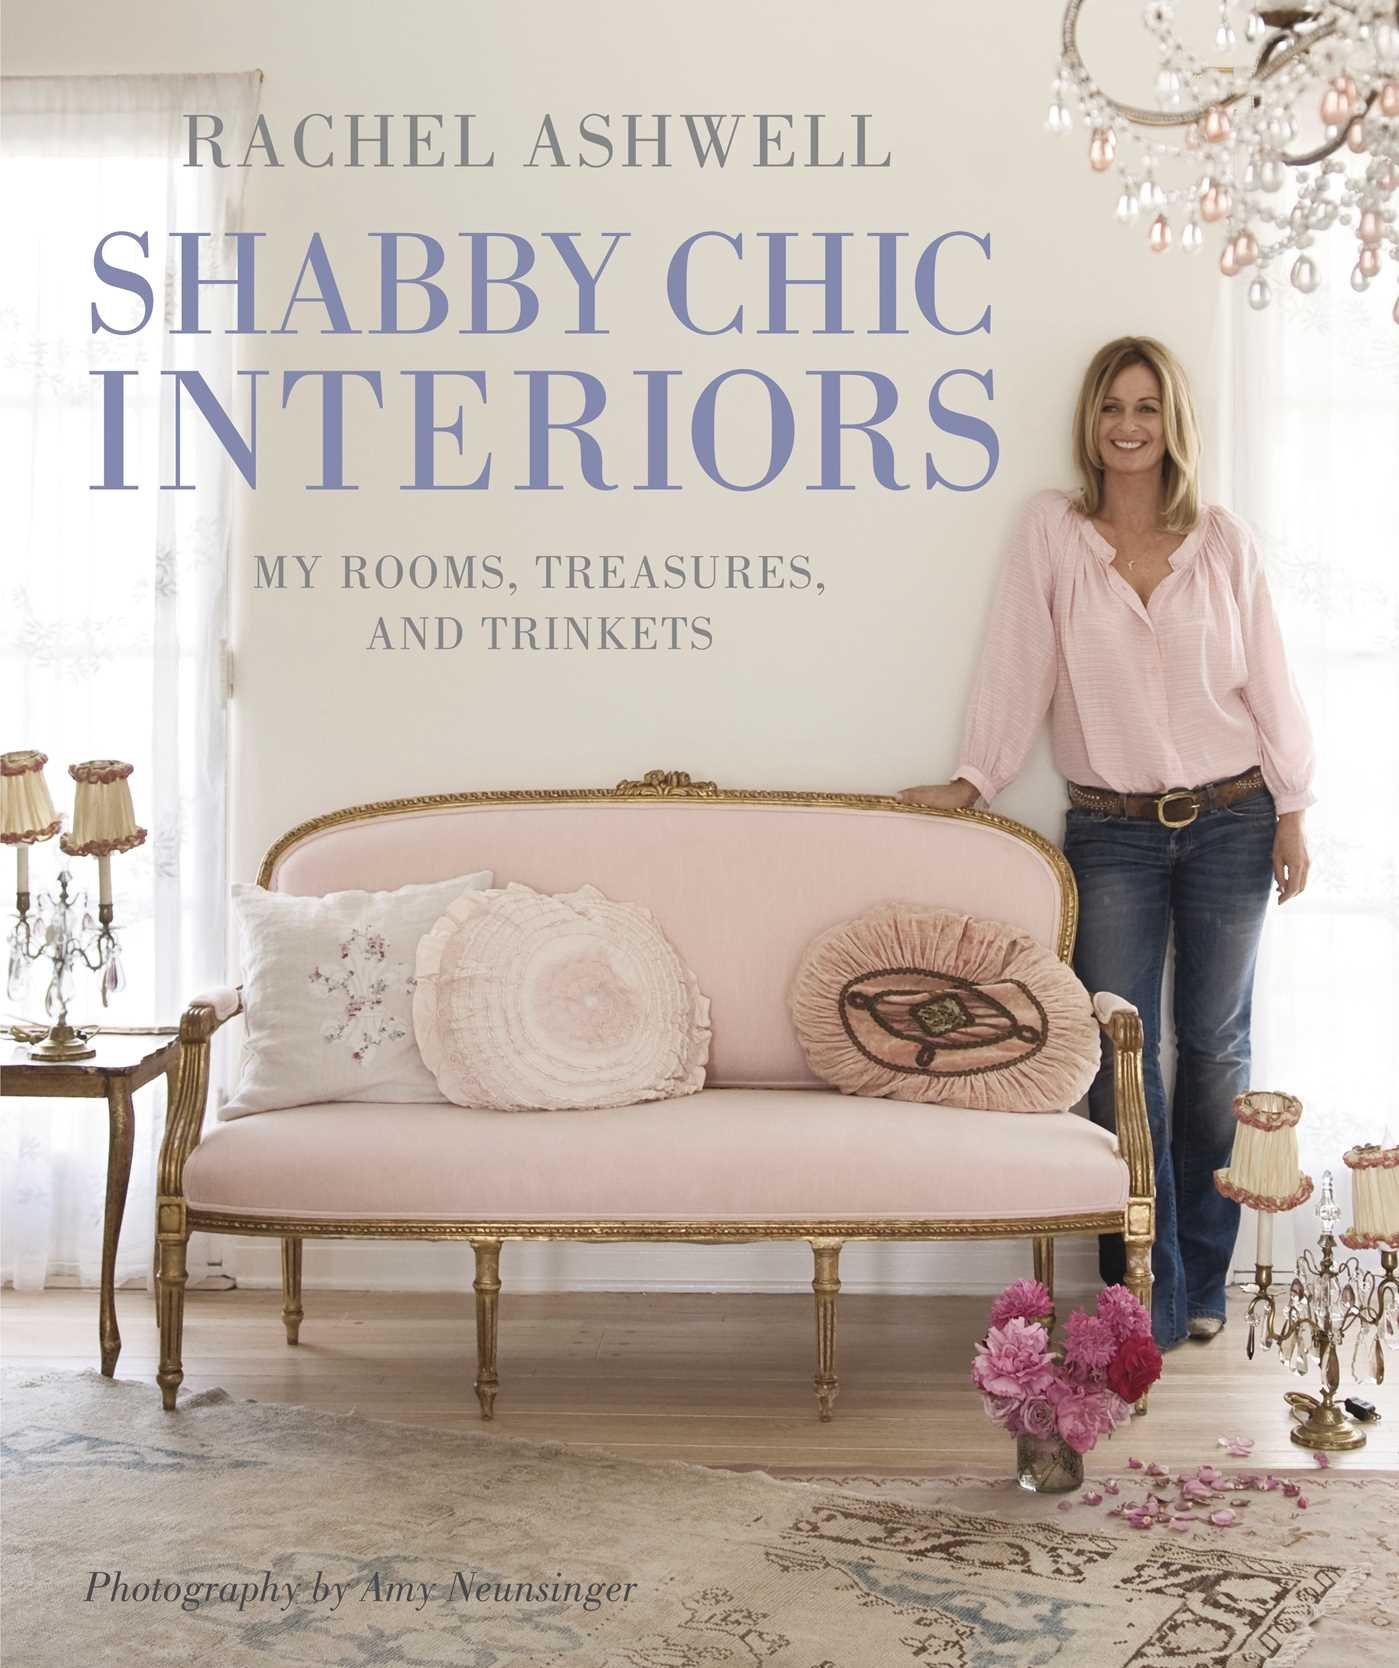 Rachel Ashwell Shabby Chic Interiors My rooms treasures and